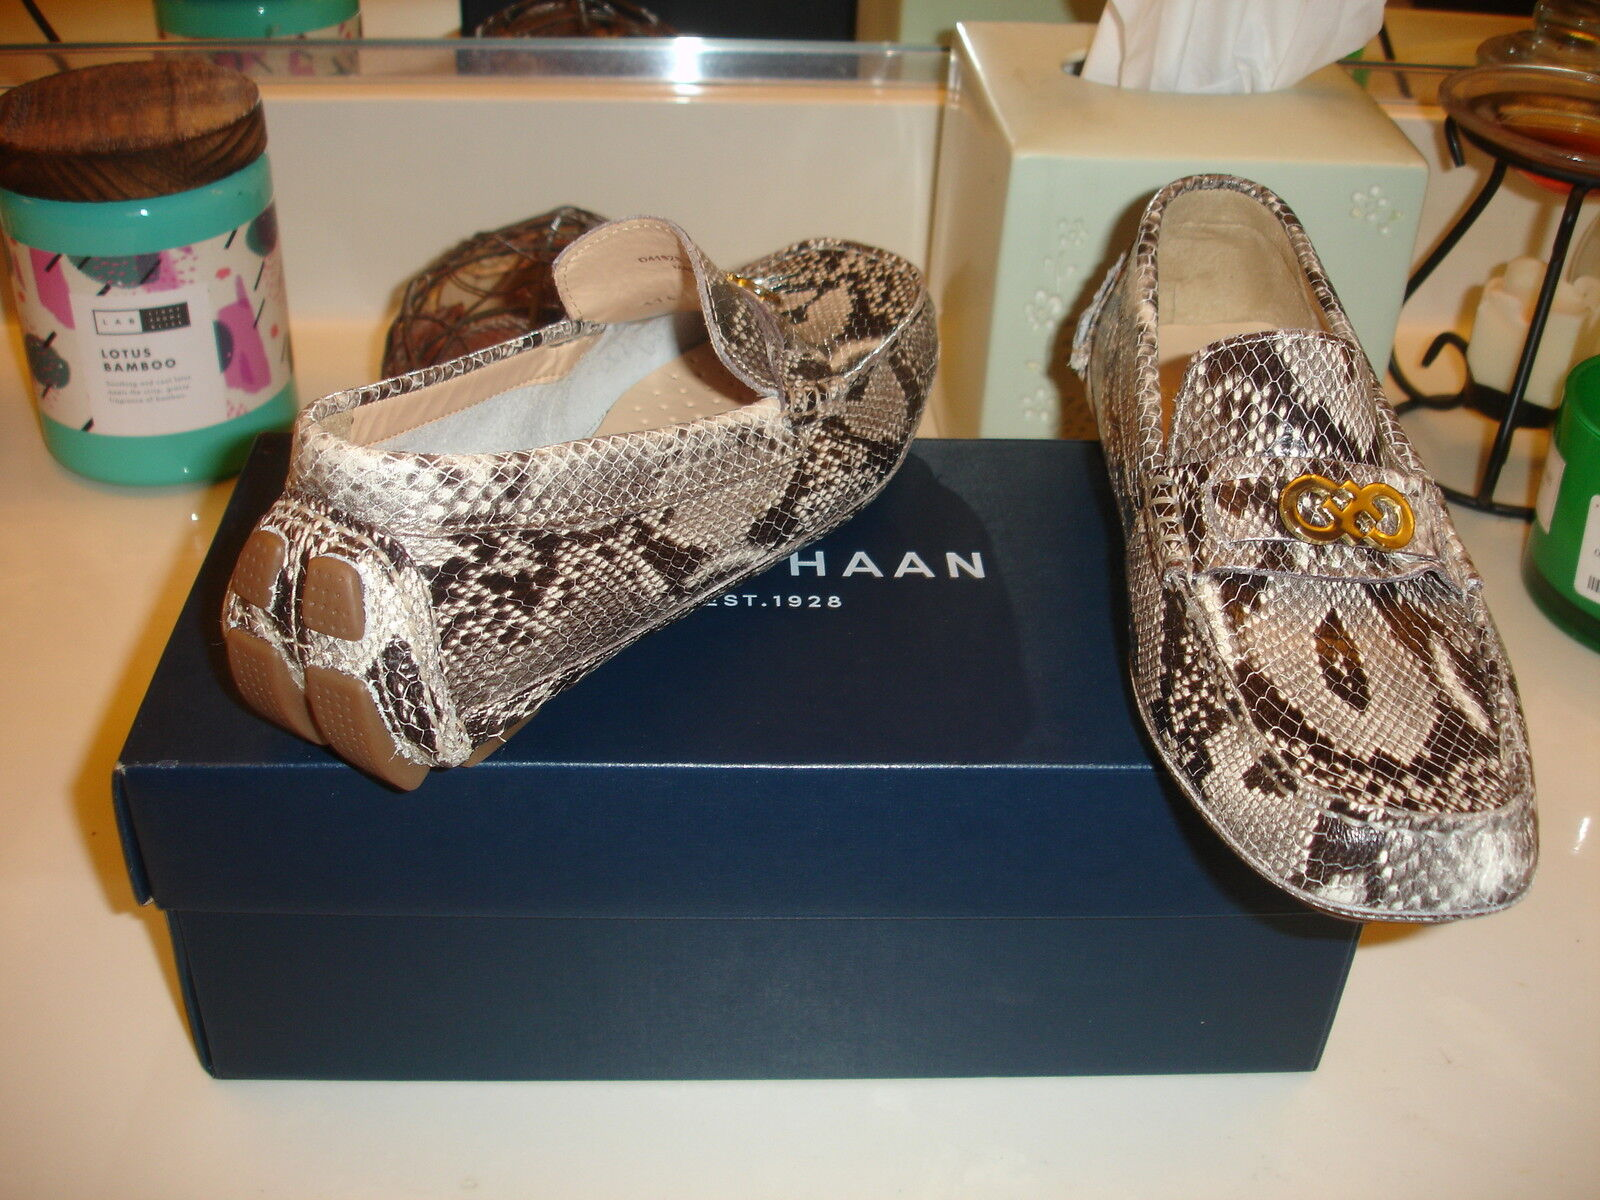 Cole Haan Shelby Logo reptile 6.5 print Loafer Mocassin shoe Cute Nice  178 6.5 reptile 0eeec8